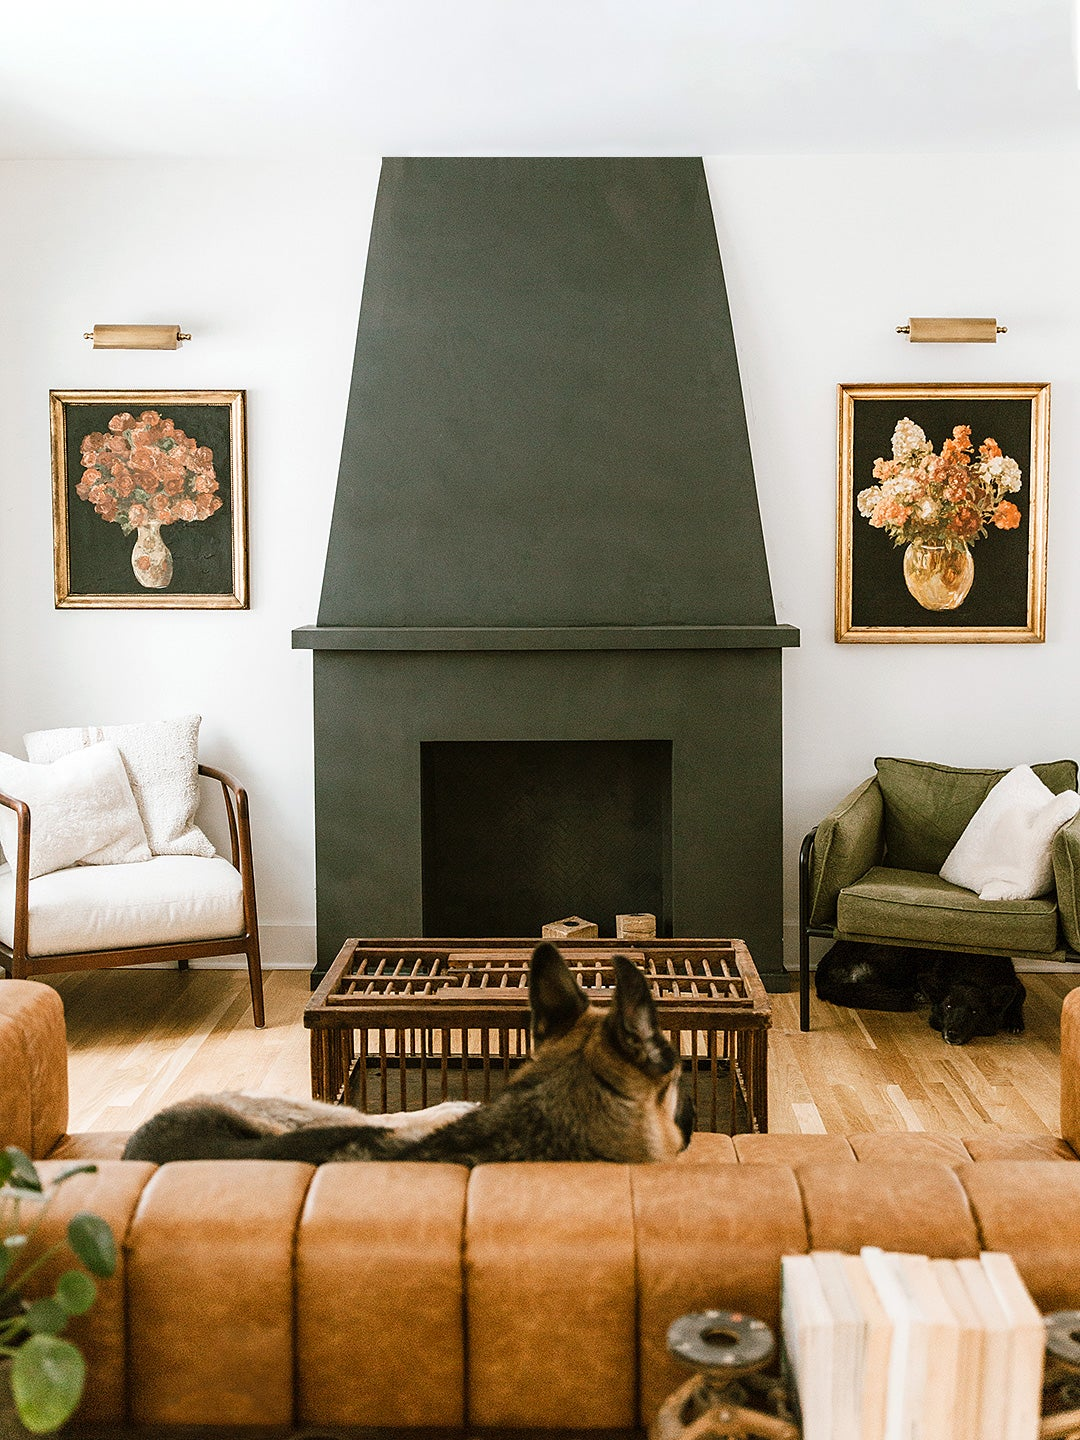 00-FEATURE-Faux-Fireplace-DIY-domino